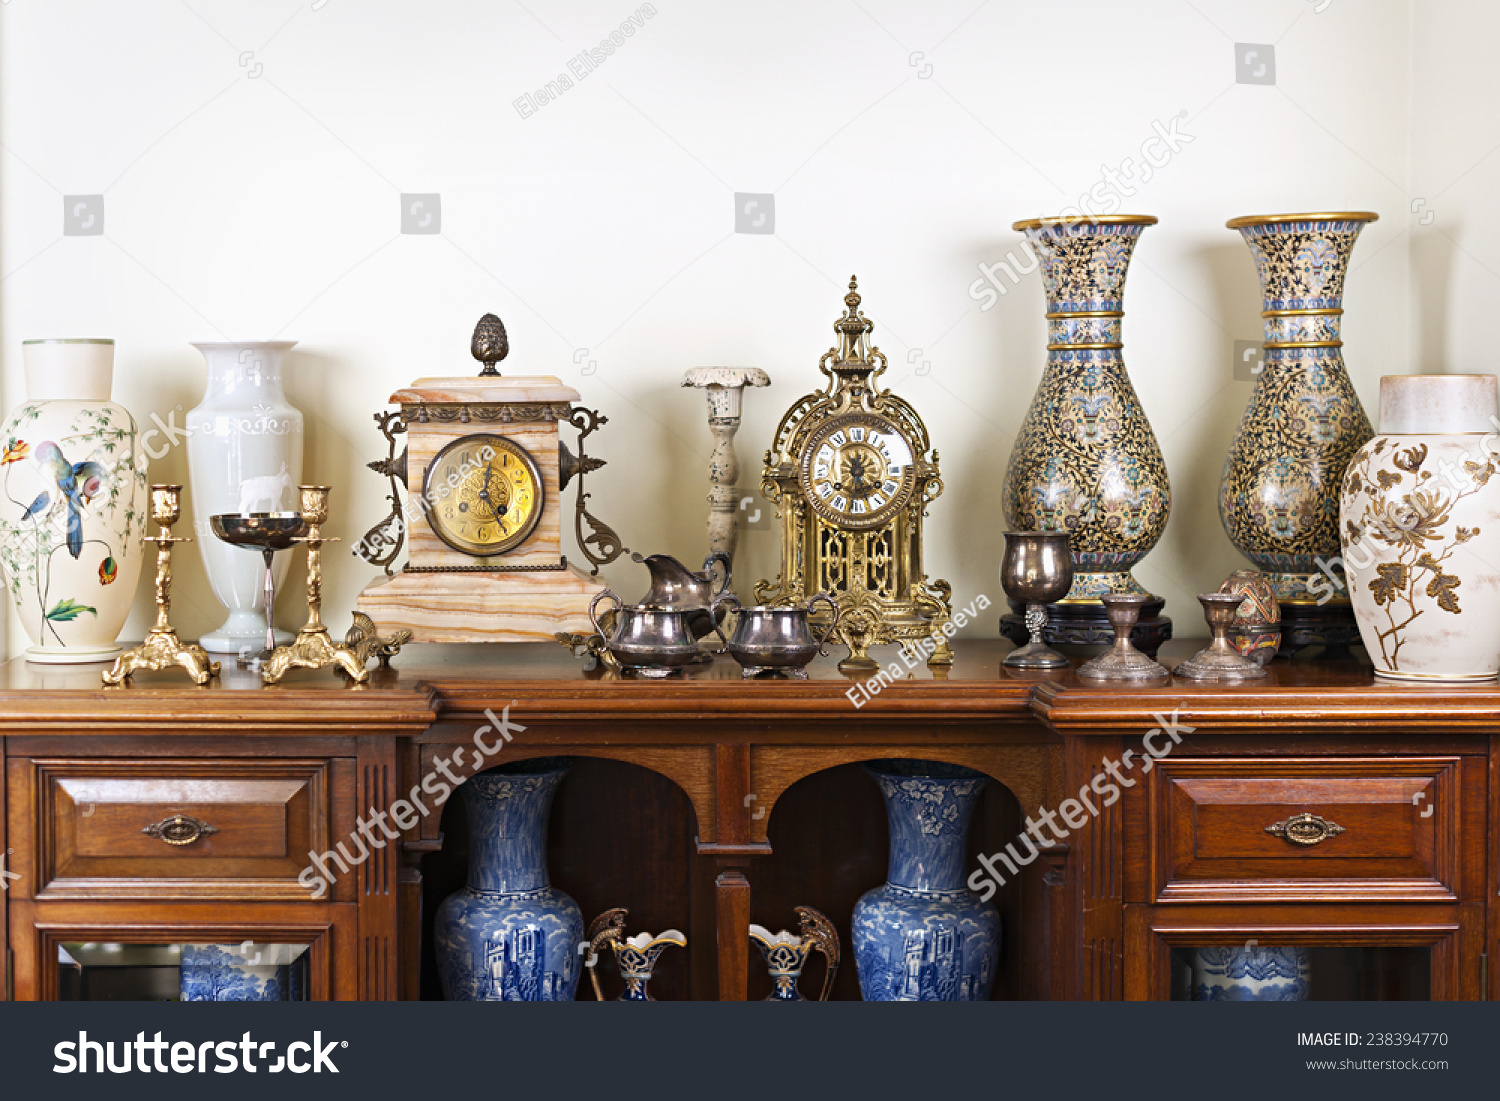 Various antique clocks vases and candlesticks on display #238394770